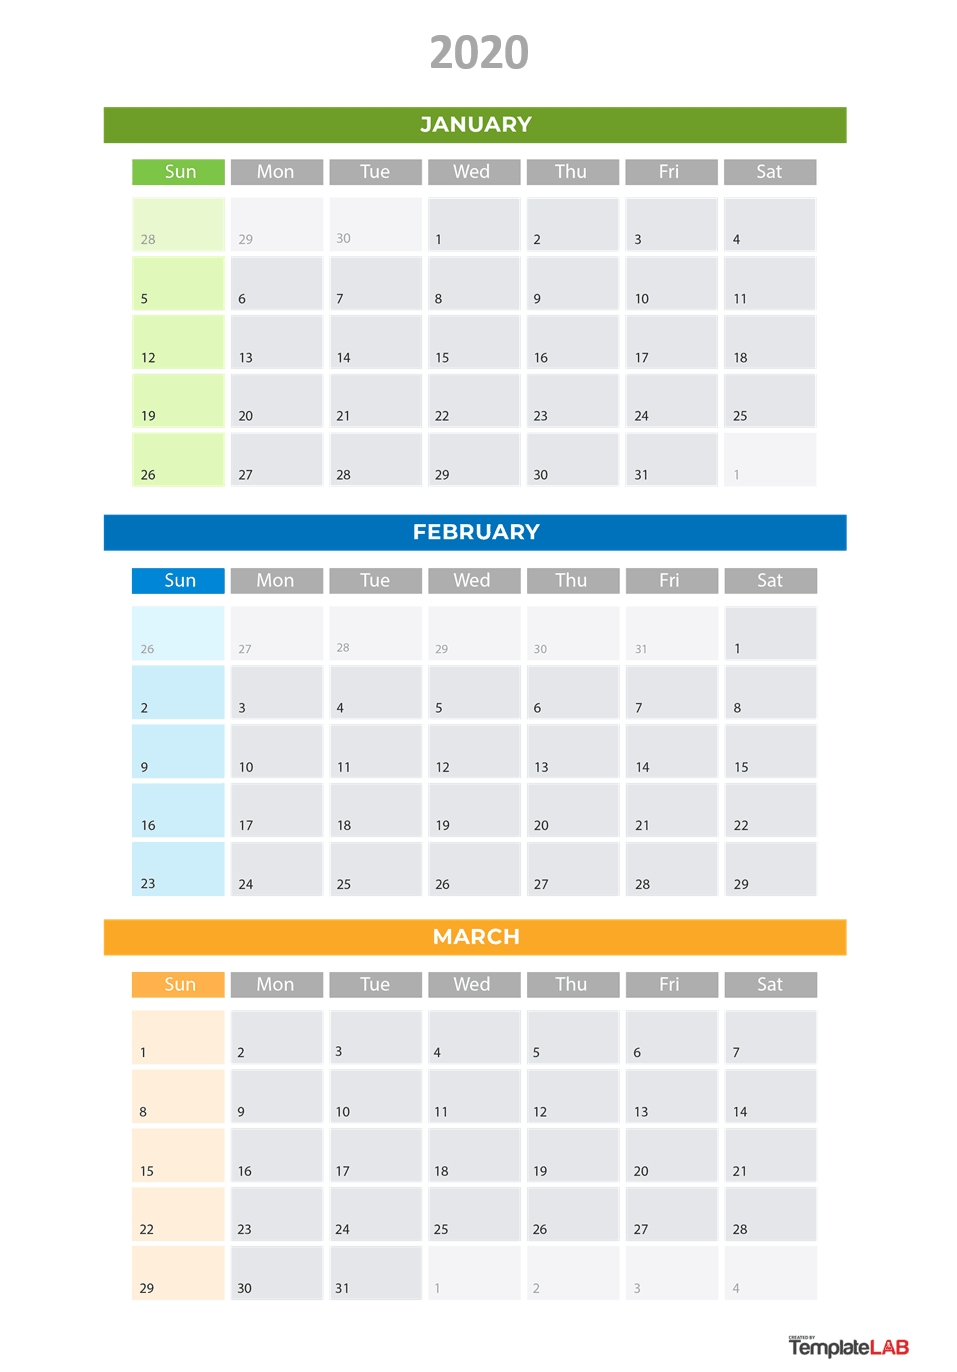 Special Days In The School Year 20192020  Calendar in 2020 Quarterly Calendar Template Excel